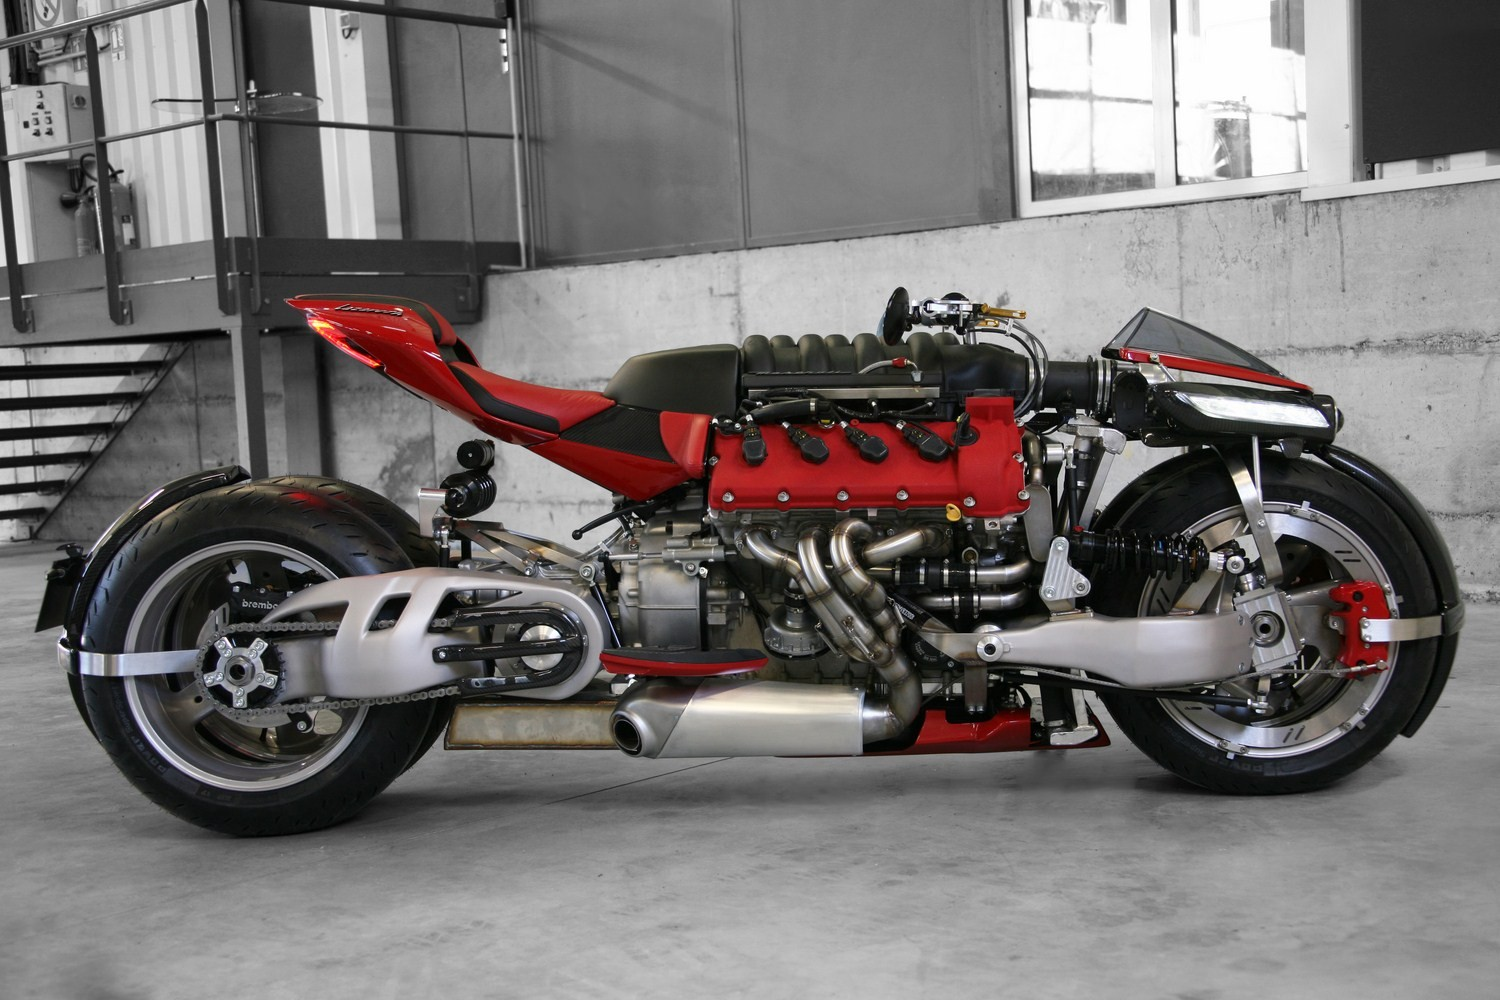 insane-lazareth-lm-847-bike-uses-a-470-hp-maserati-v8-engine_12